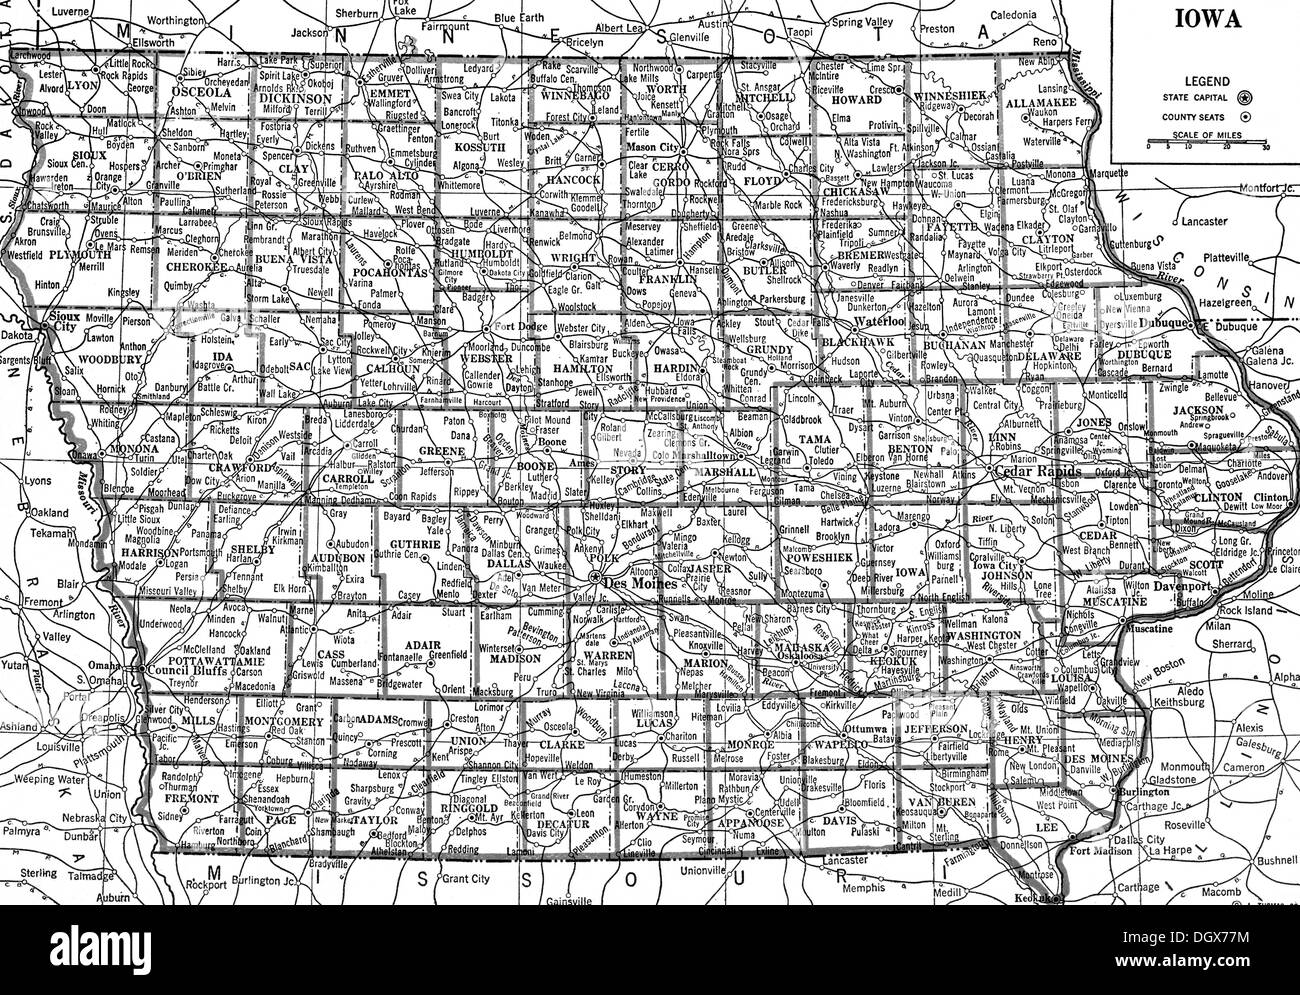 Old Map Of Iowa State S Stock Photo Royalty Free Image - Map of iowa